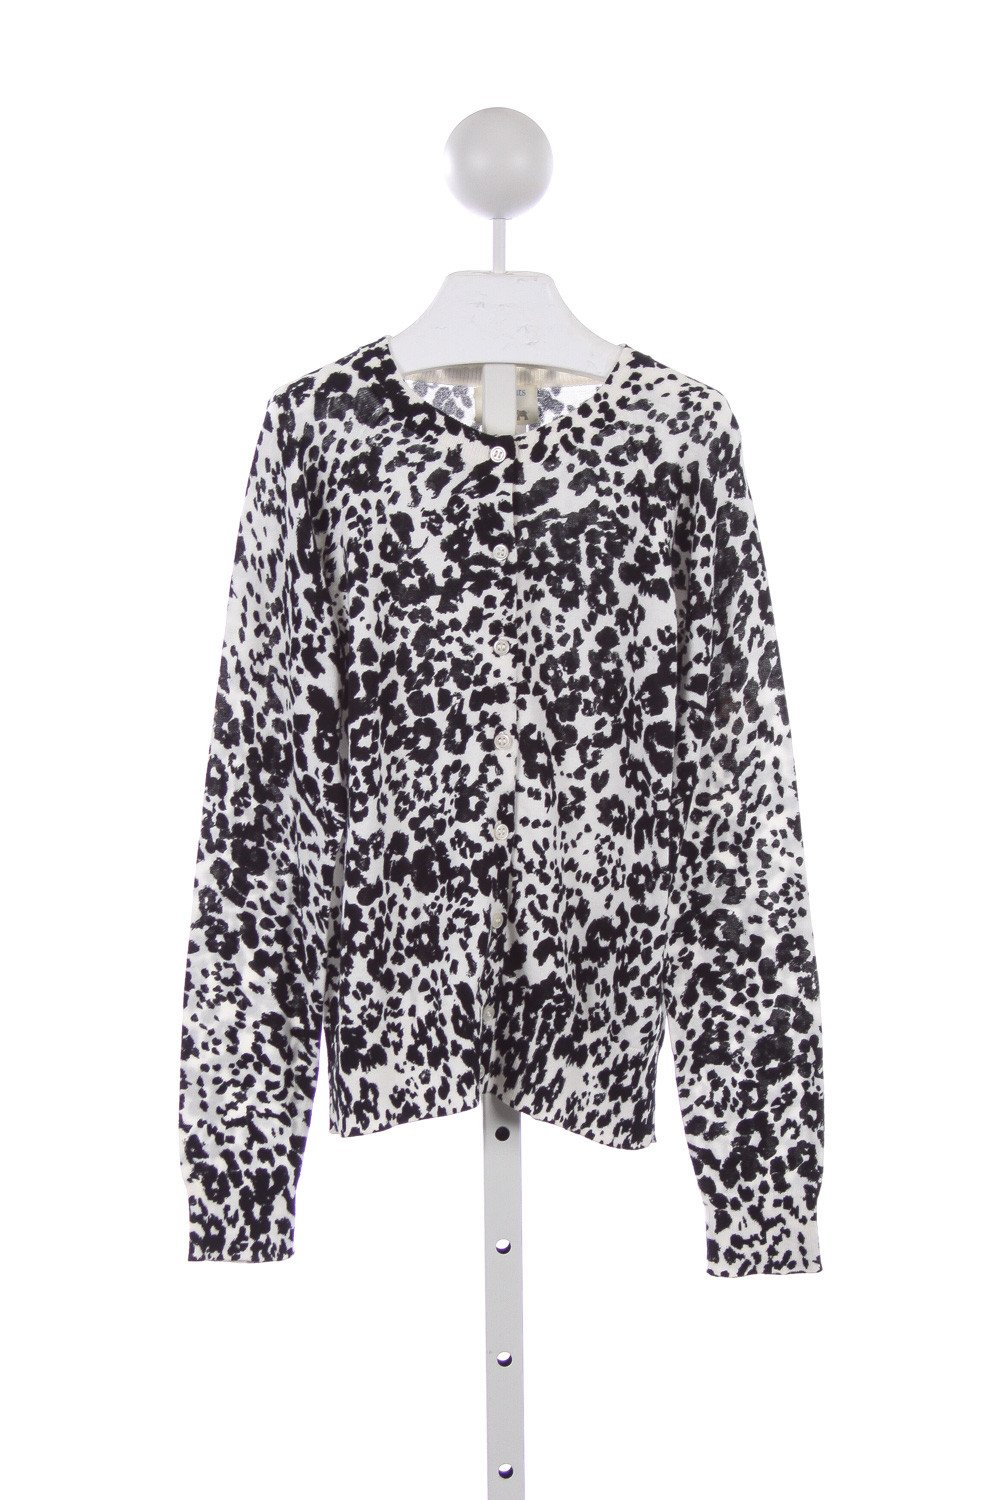 FACTORY BLACK AND WHITE LEOPARD PRINT SWEATER